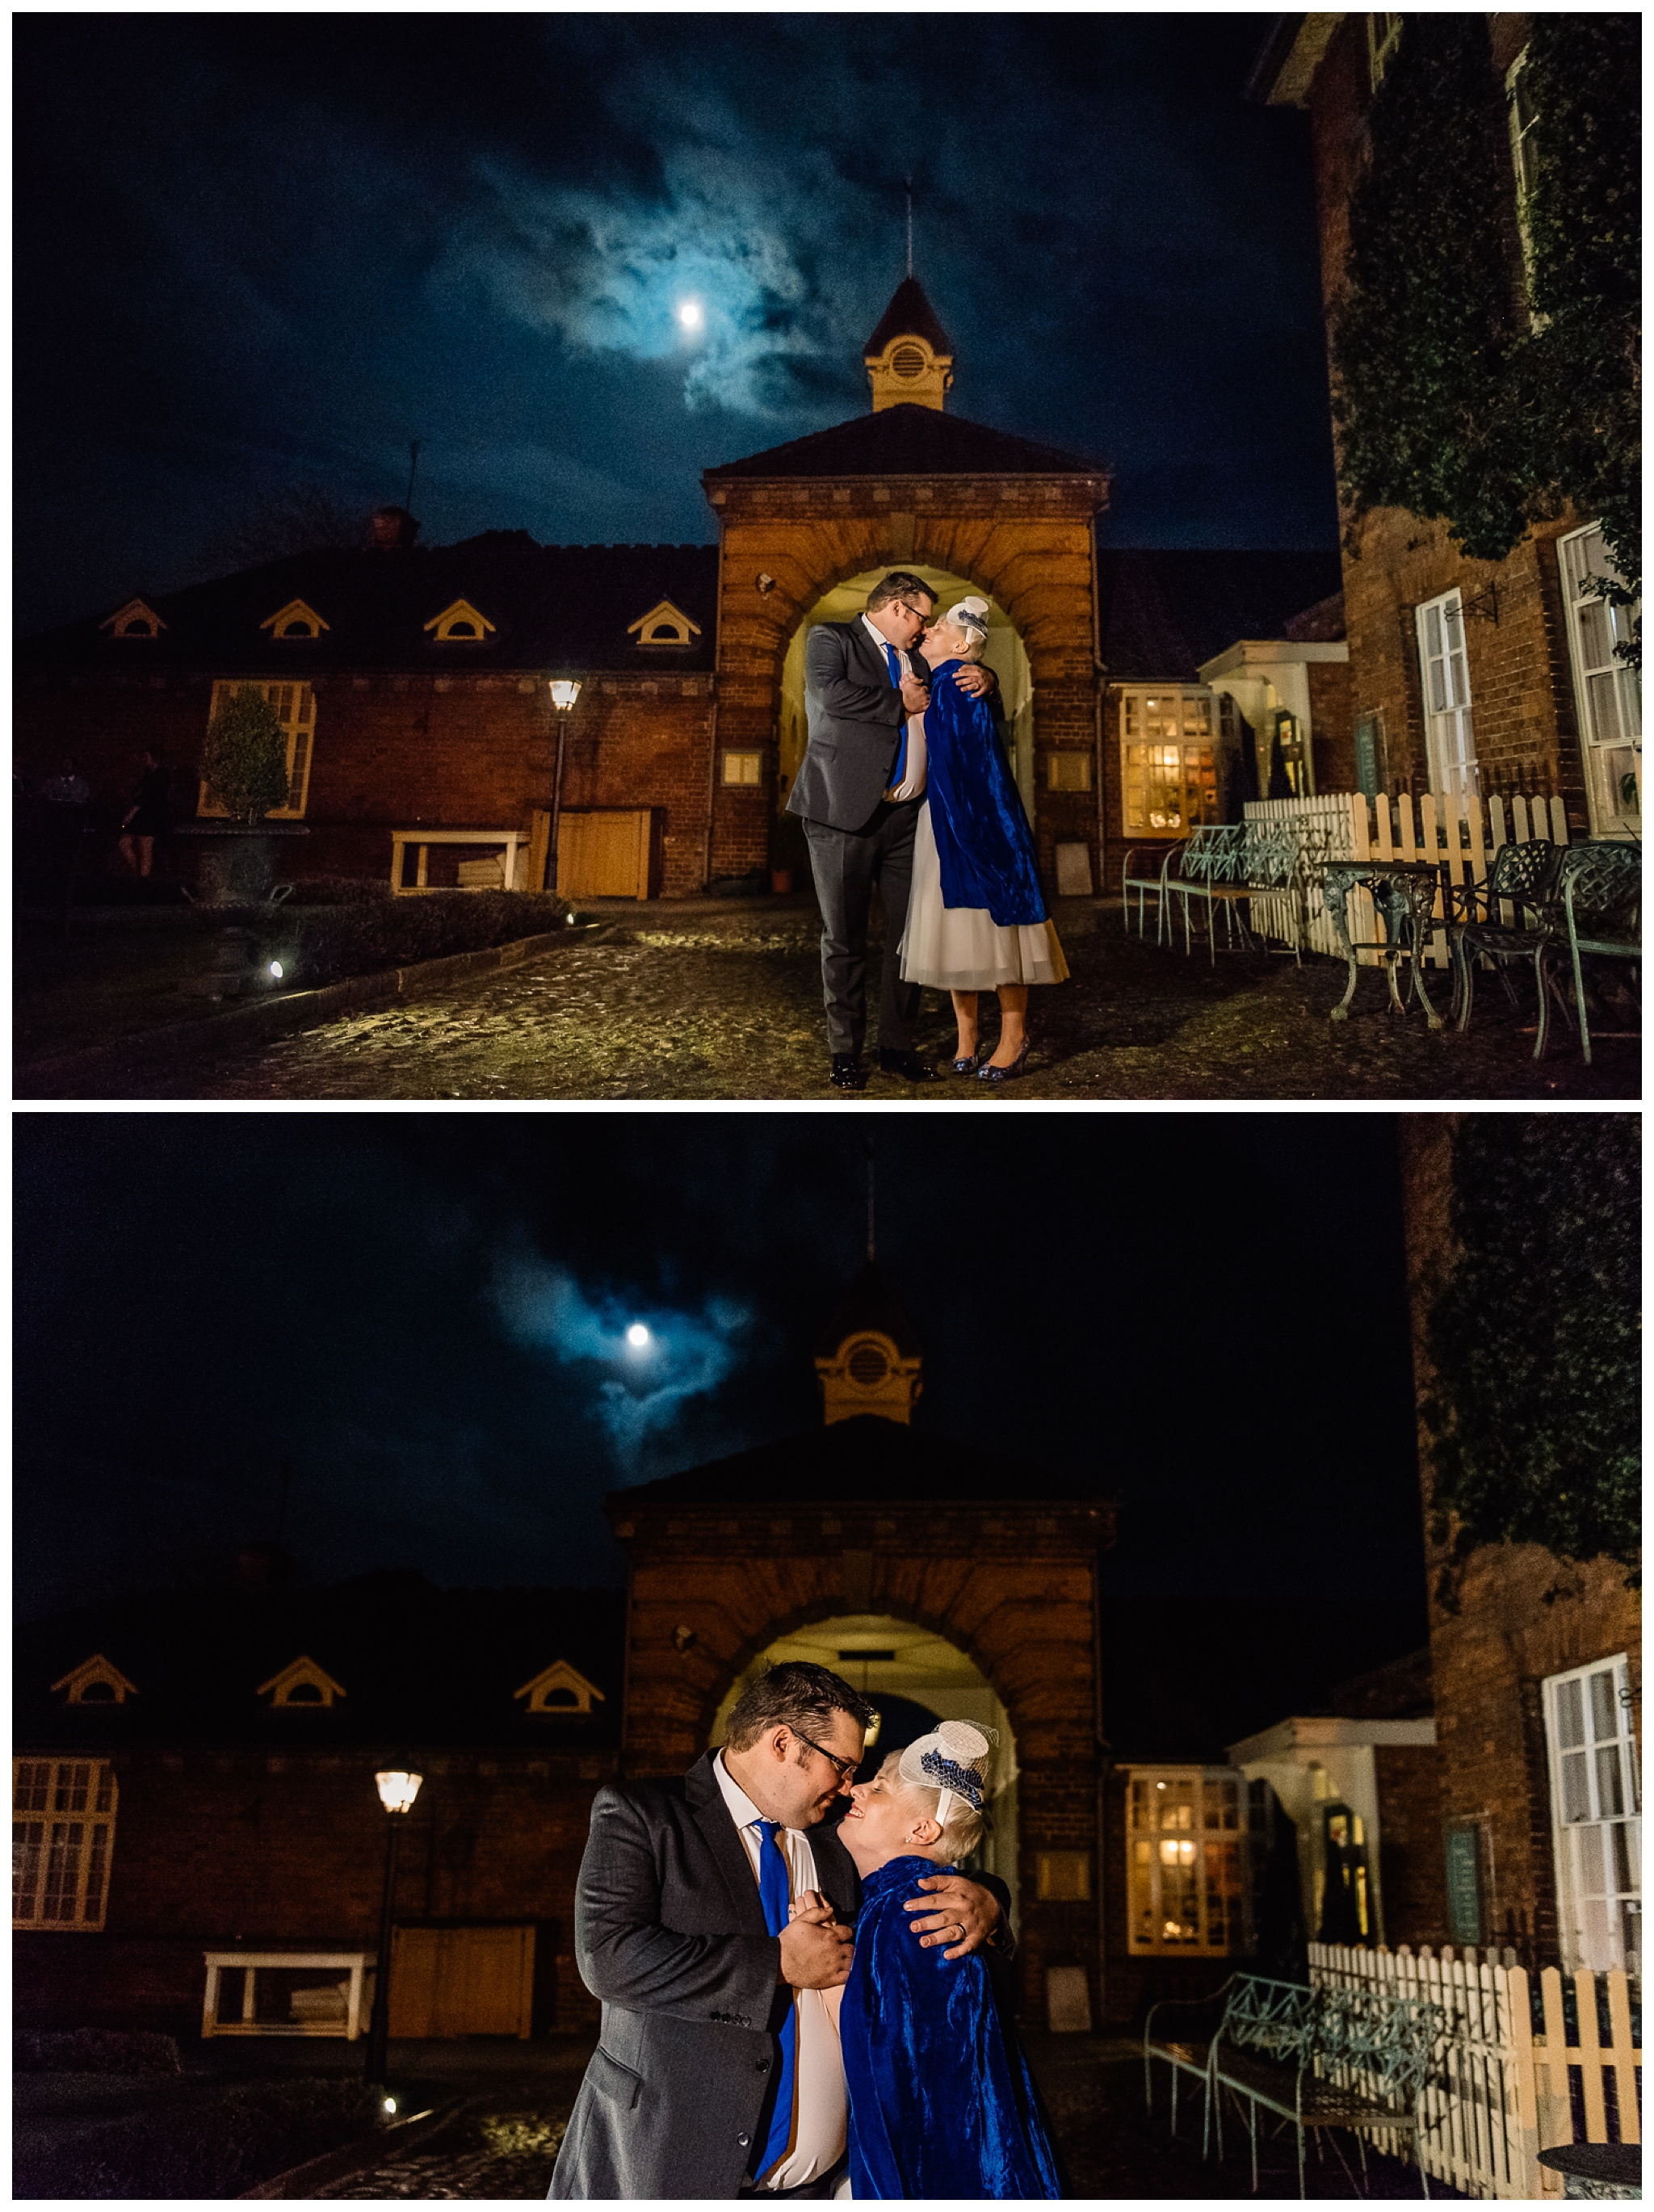 Nikki-Cooper-Photography-Autumn-Wedding-Shrewsbury_0055.jpg